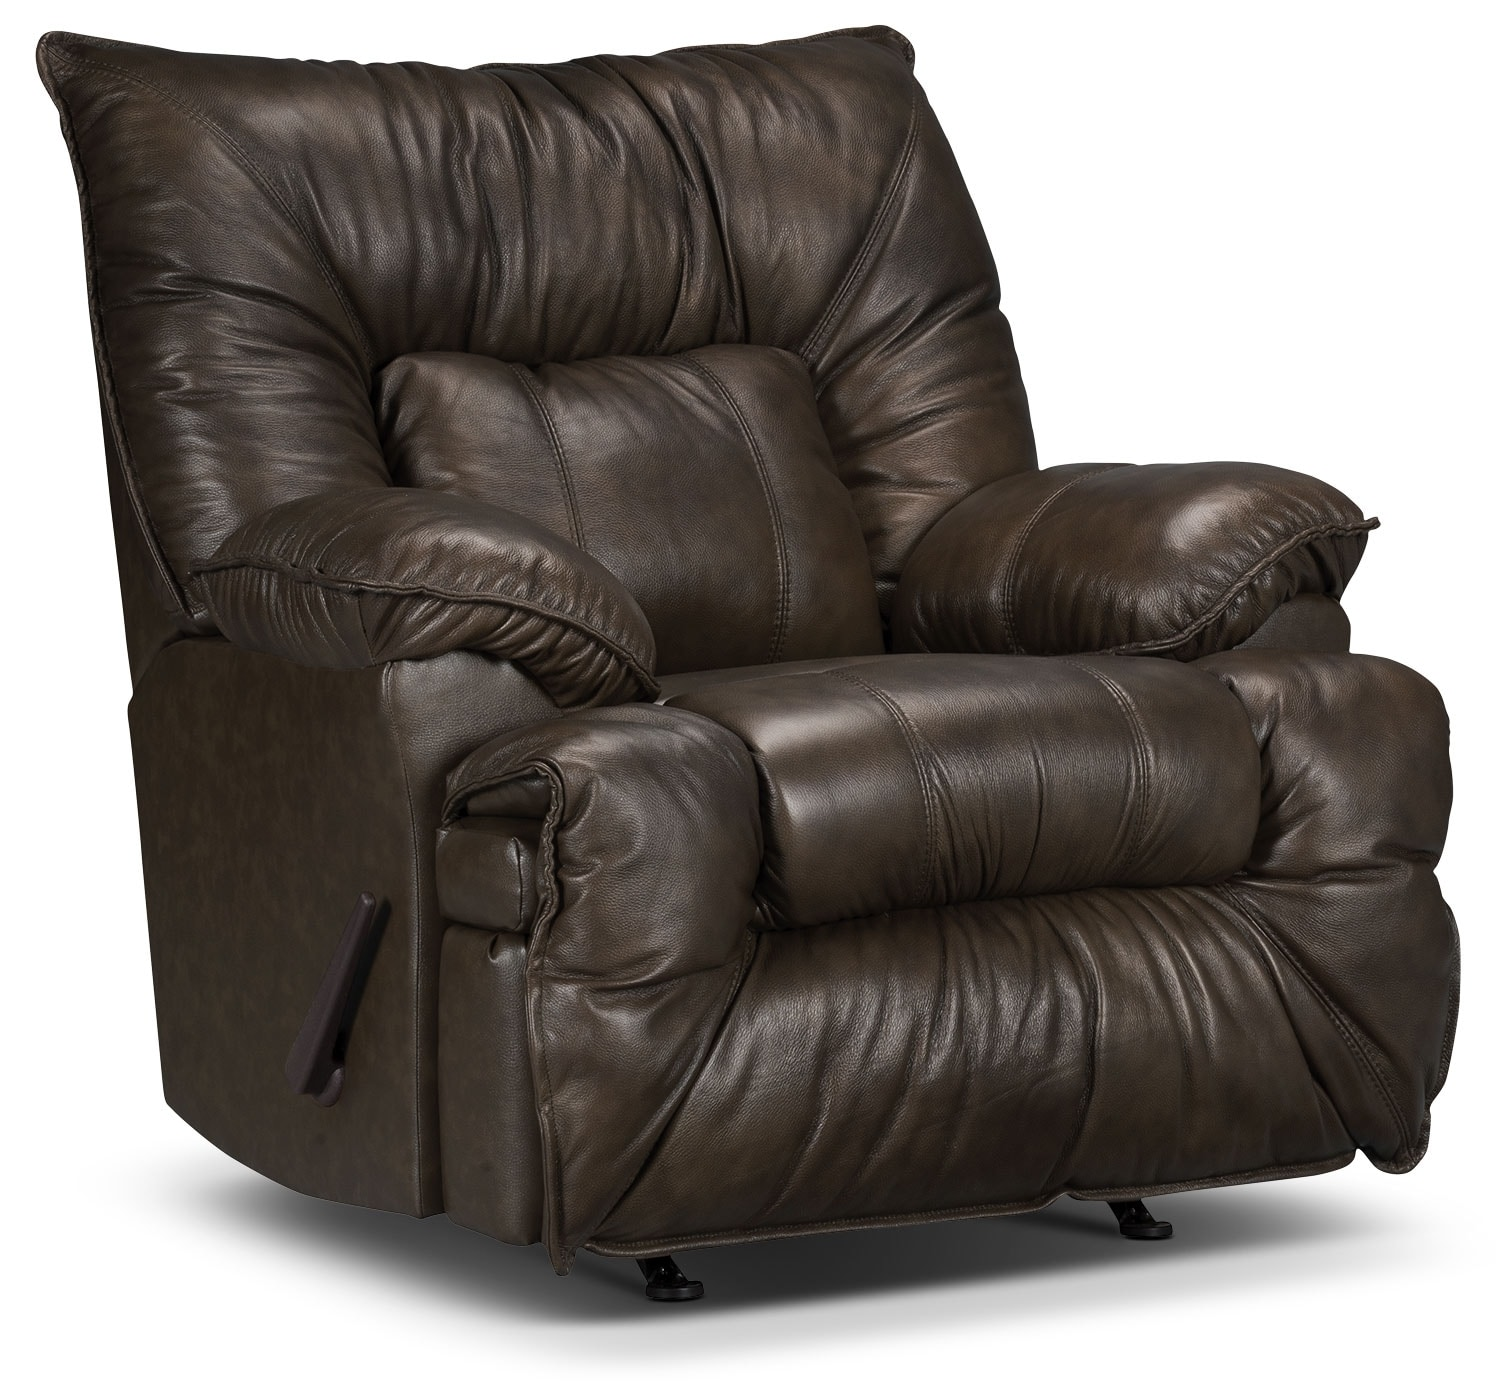 Designed2B Recliner 7726 Leather-Look Fabric Rocking Chair- Chocolate